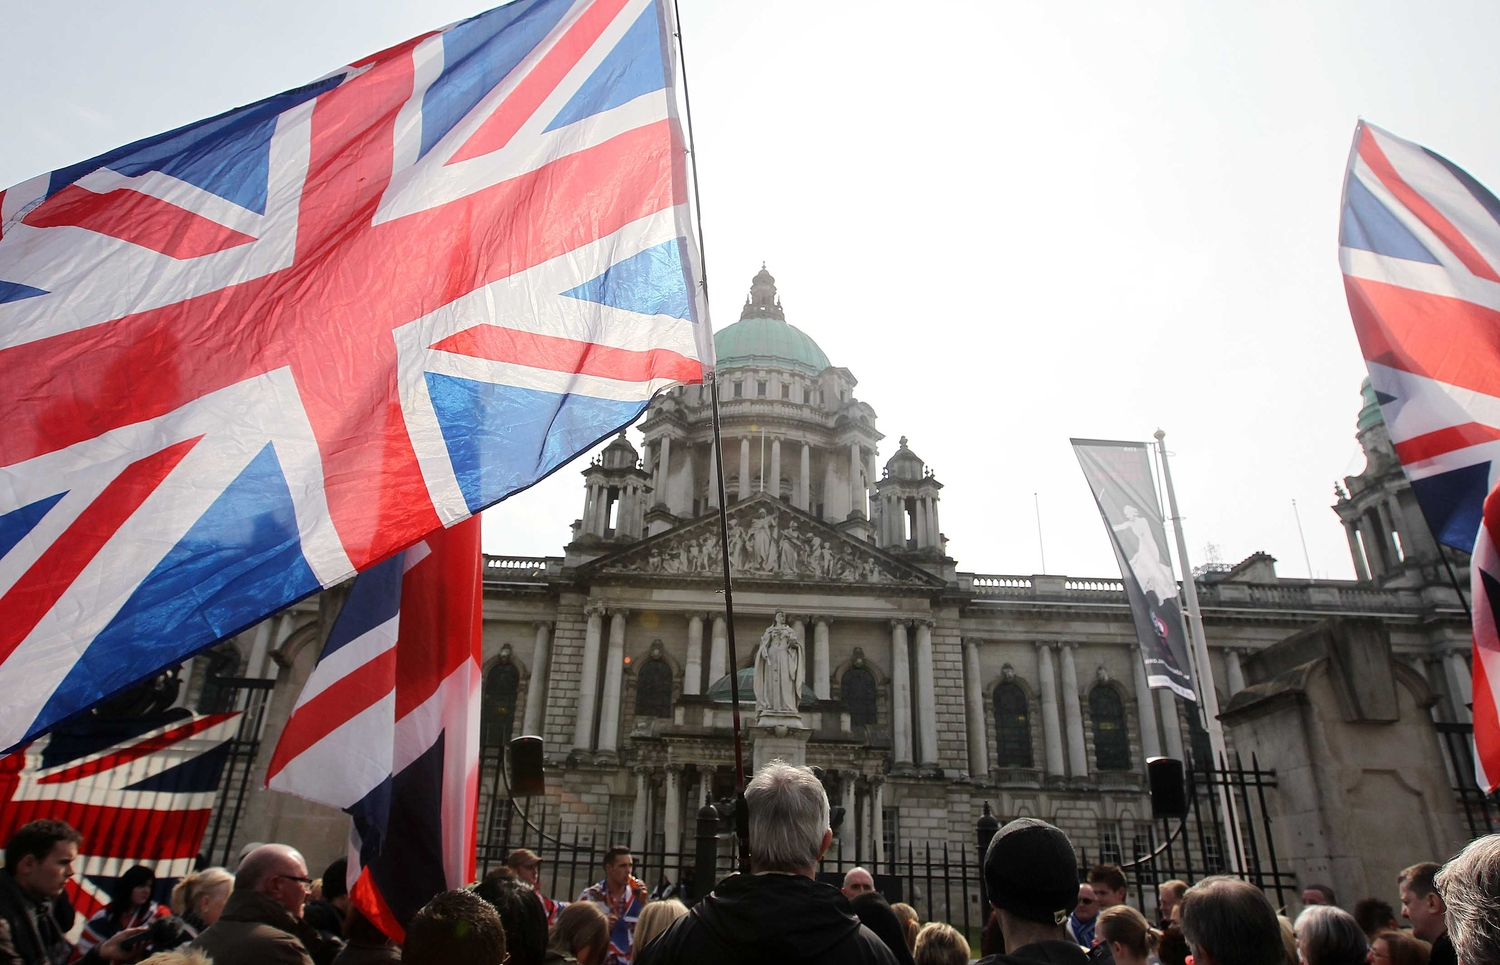 A protest at Belfast City Hall over restrictions placed on flying the Union flag.